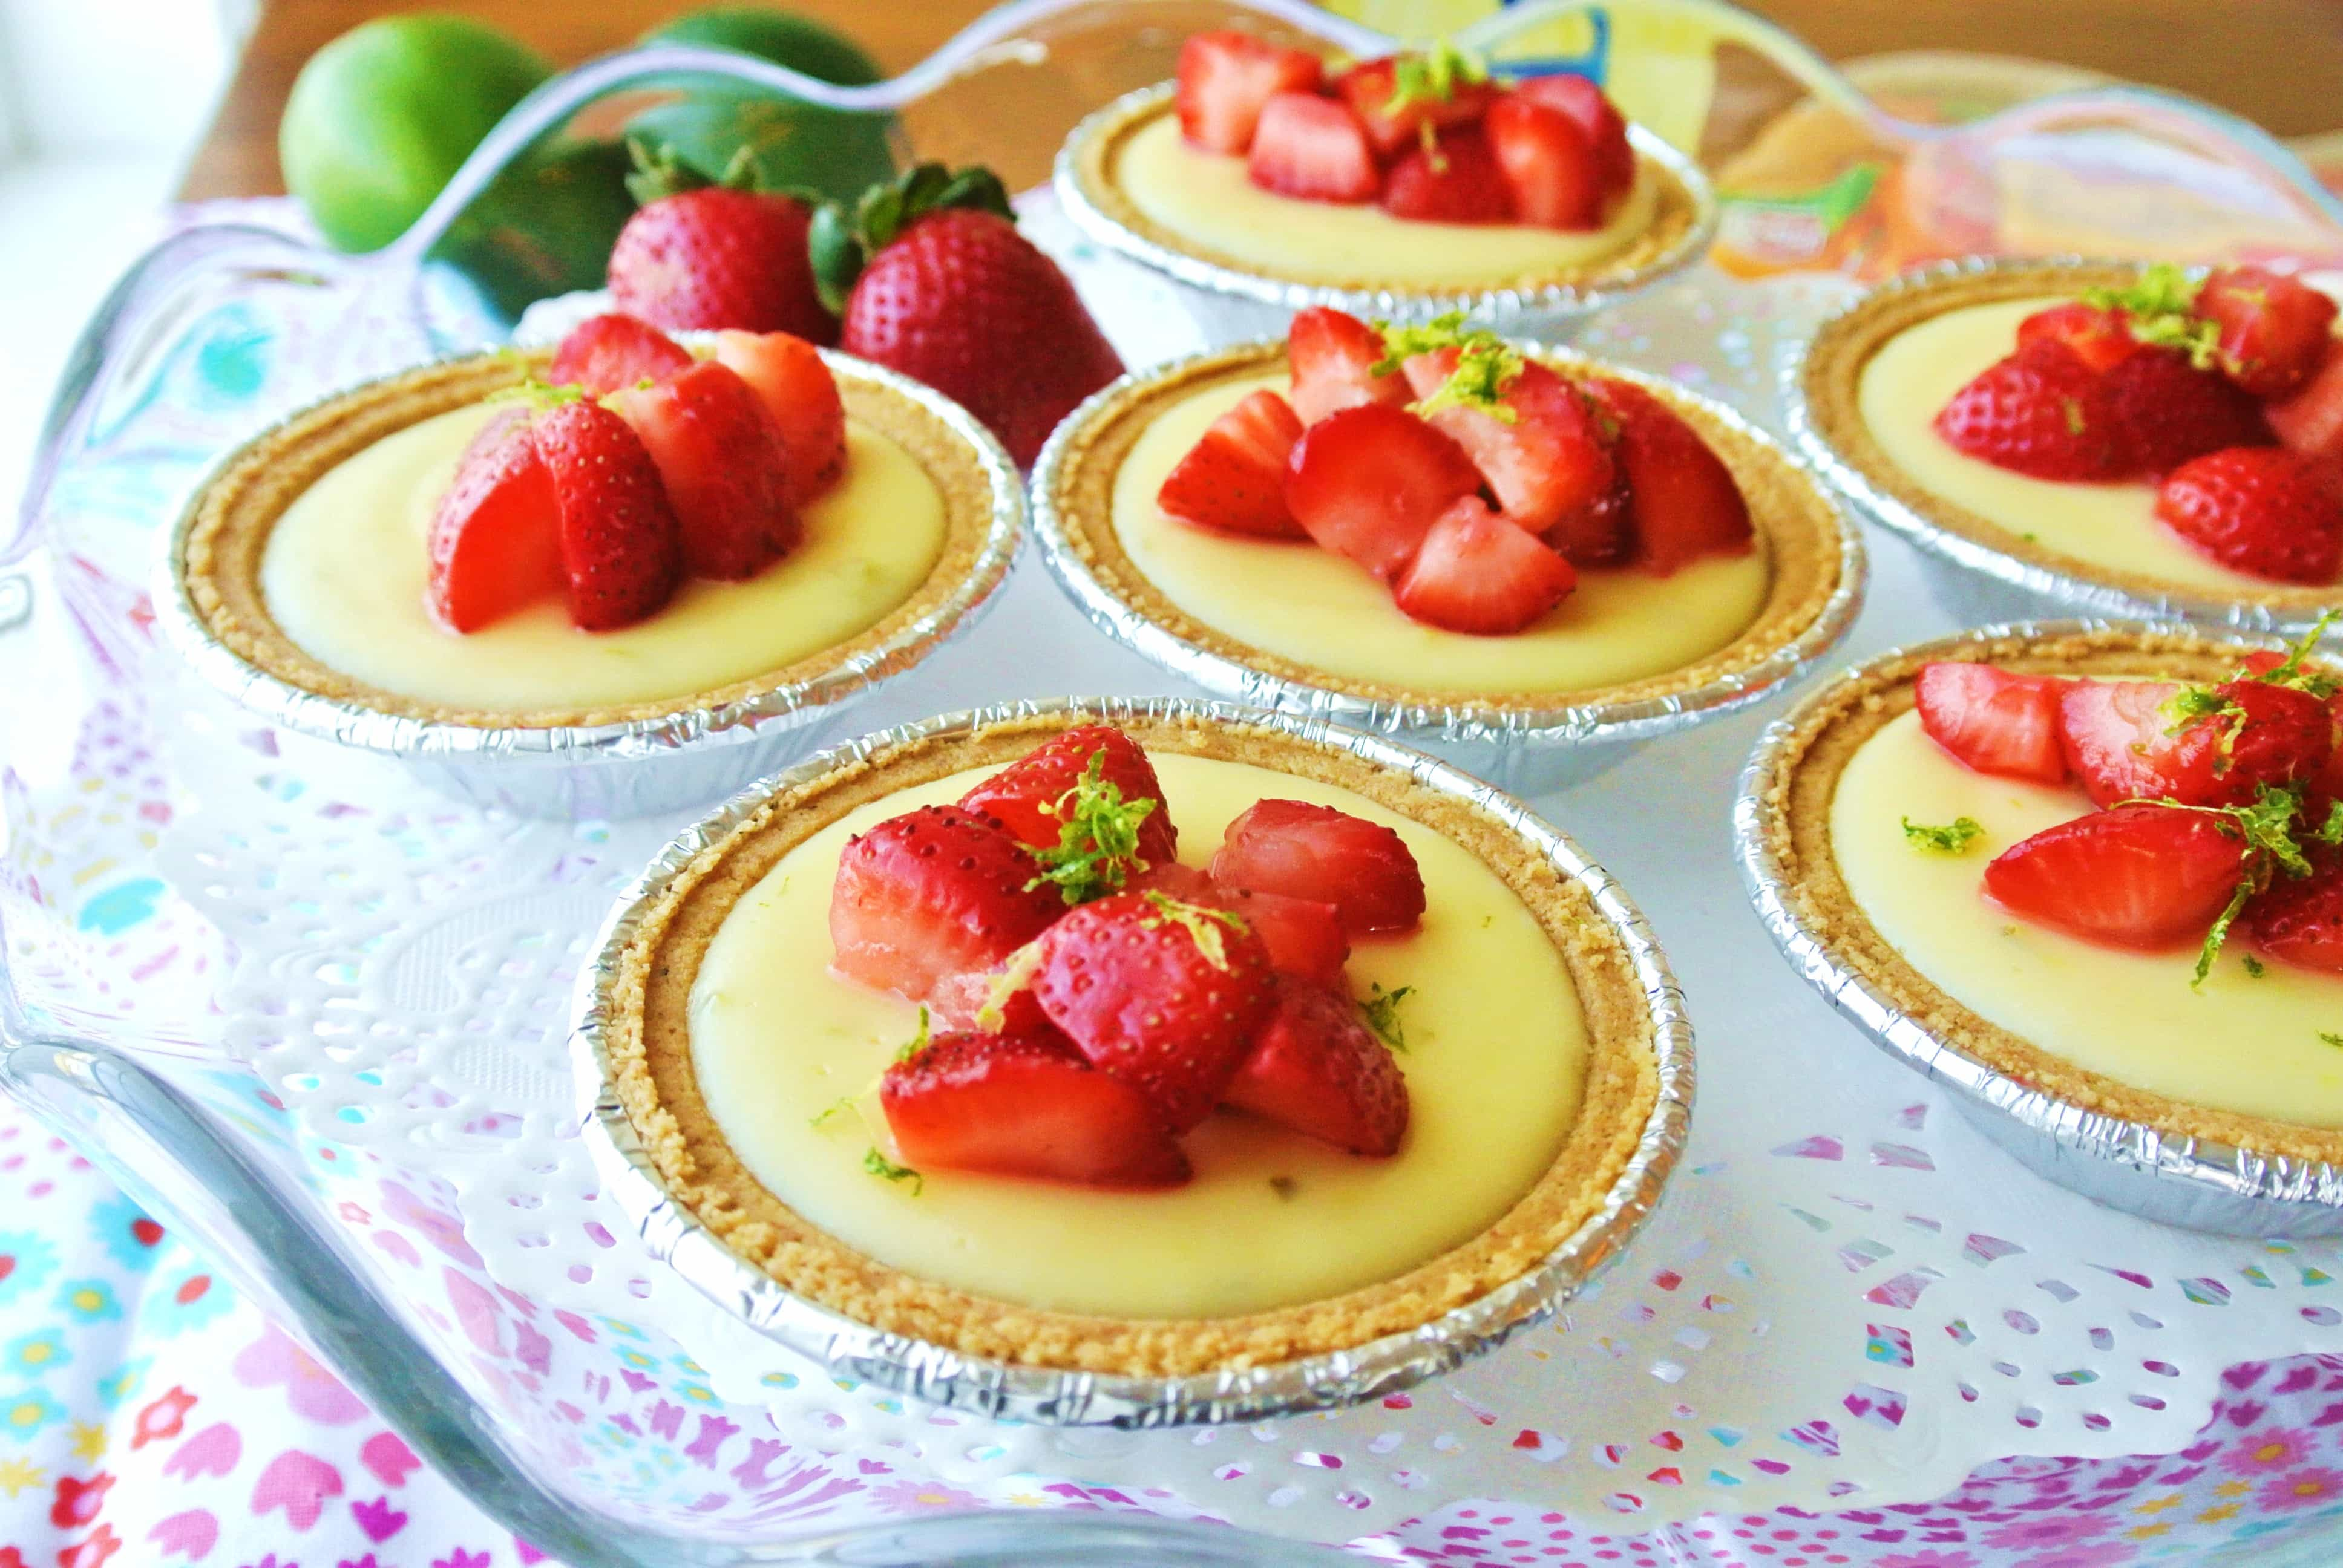 Mini Strawberry Key Lime Pies with Limoncello